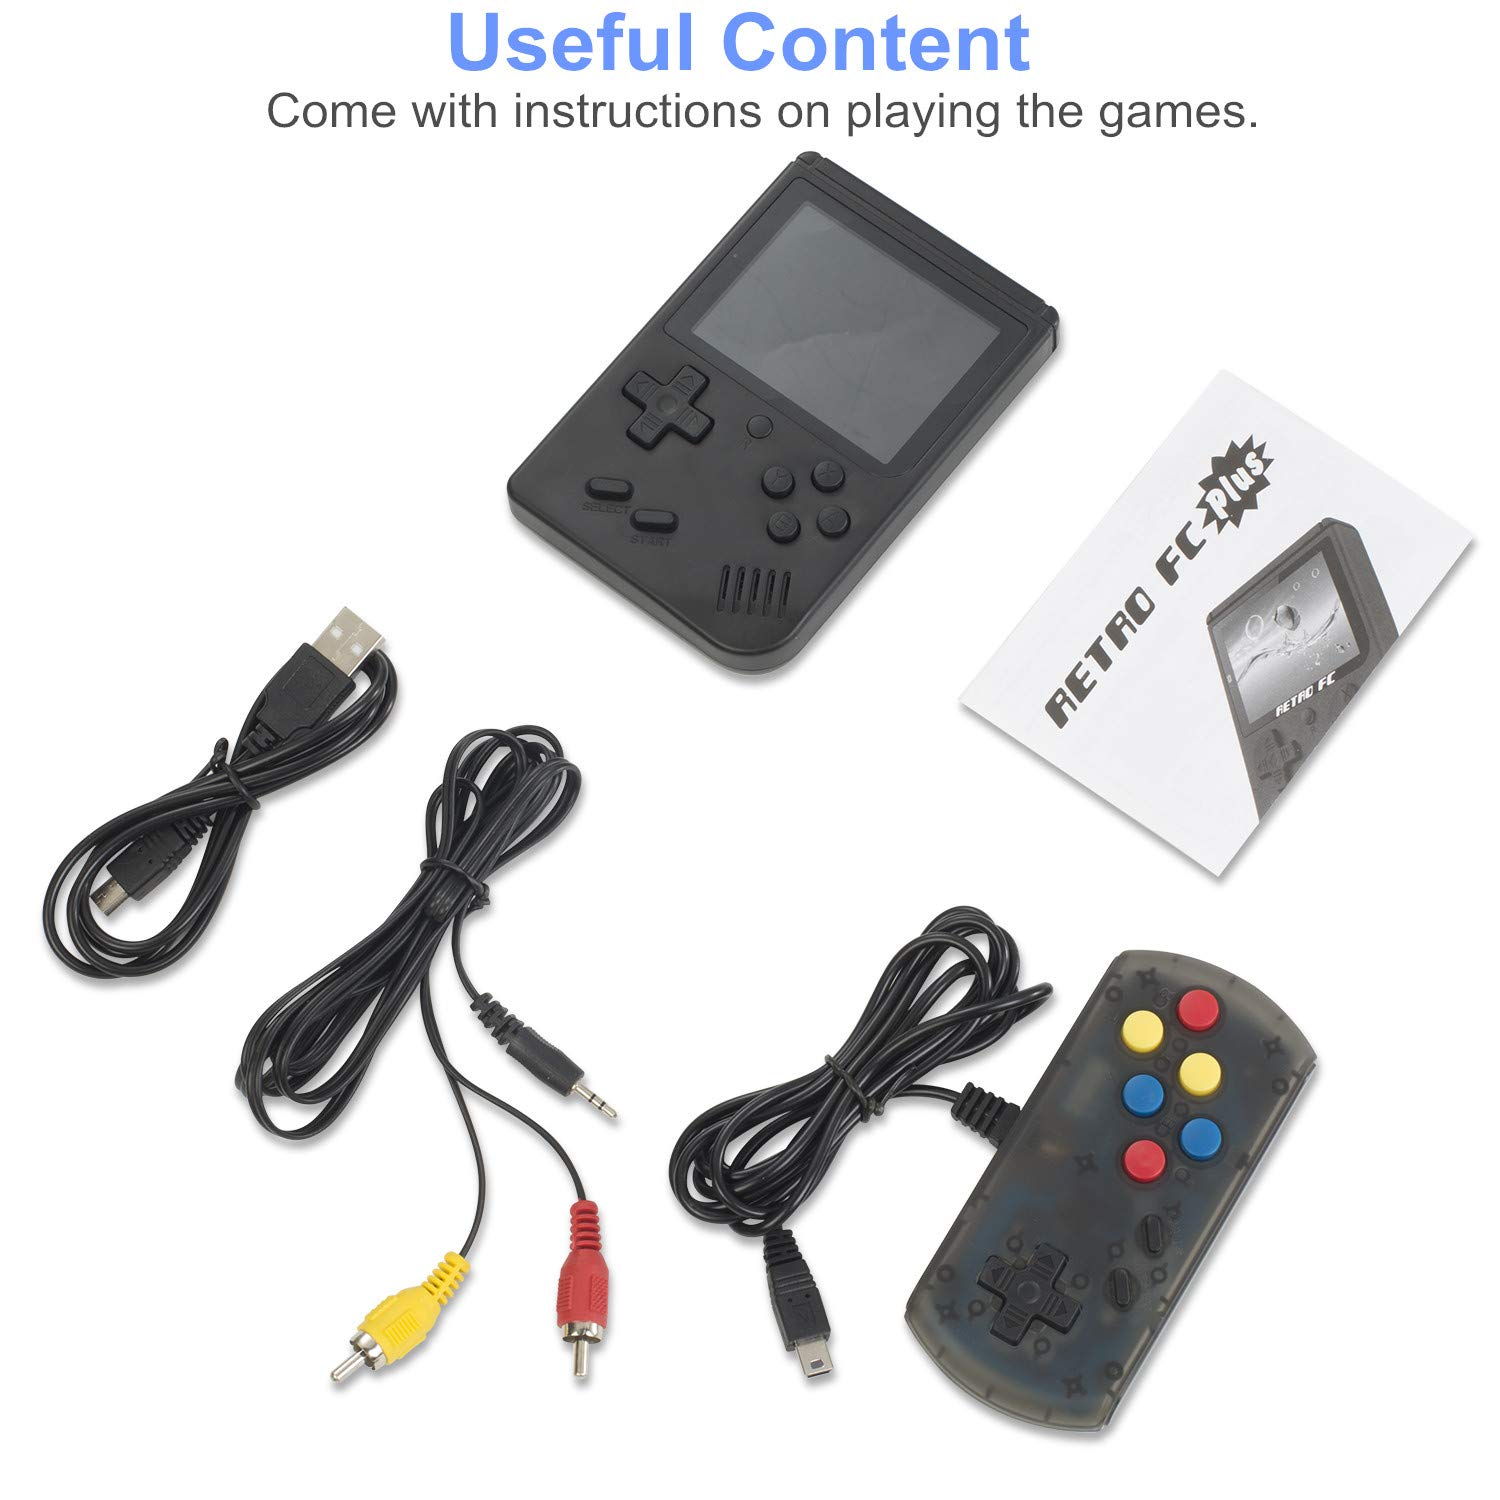 weikin Handheld Game Console, 168 Classic Games 3 Inch LCD Screen Portable Retro Video Game Console Support for Connecting TV and Two Players, Good Gifts for Kids and Adult. by weikin (Image #6)